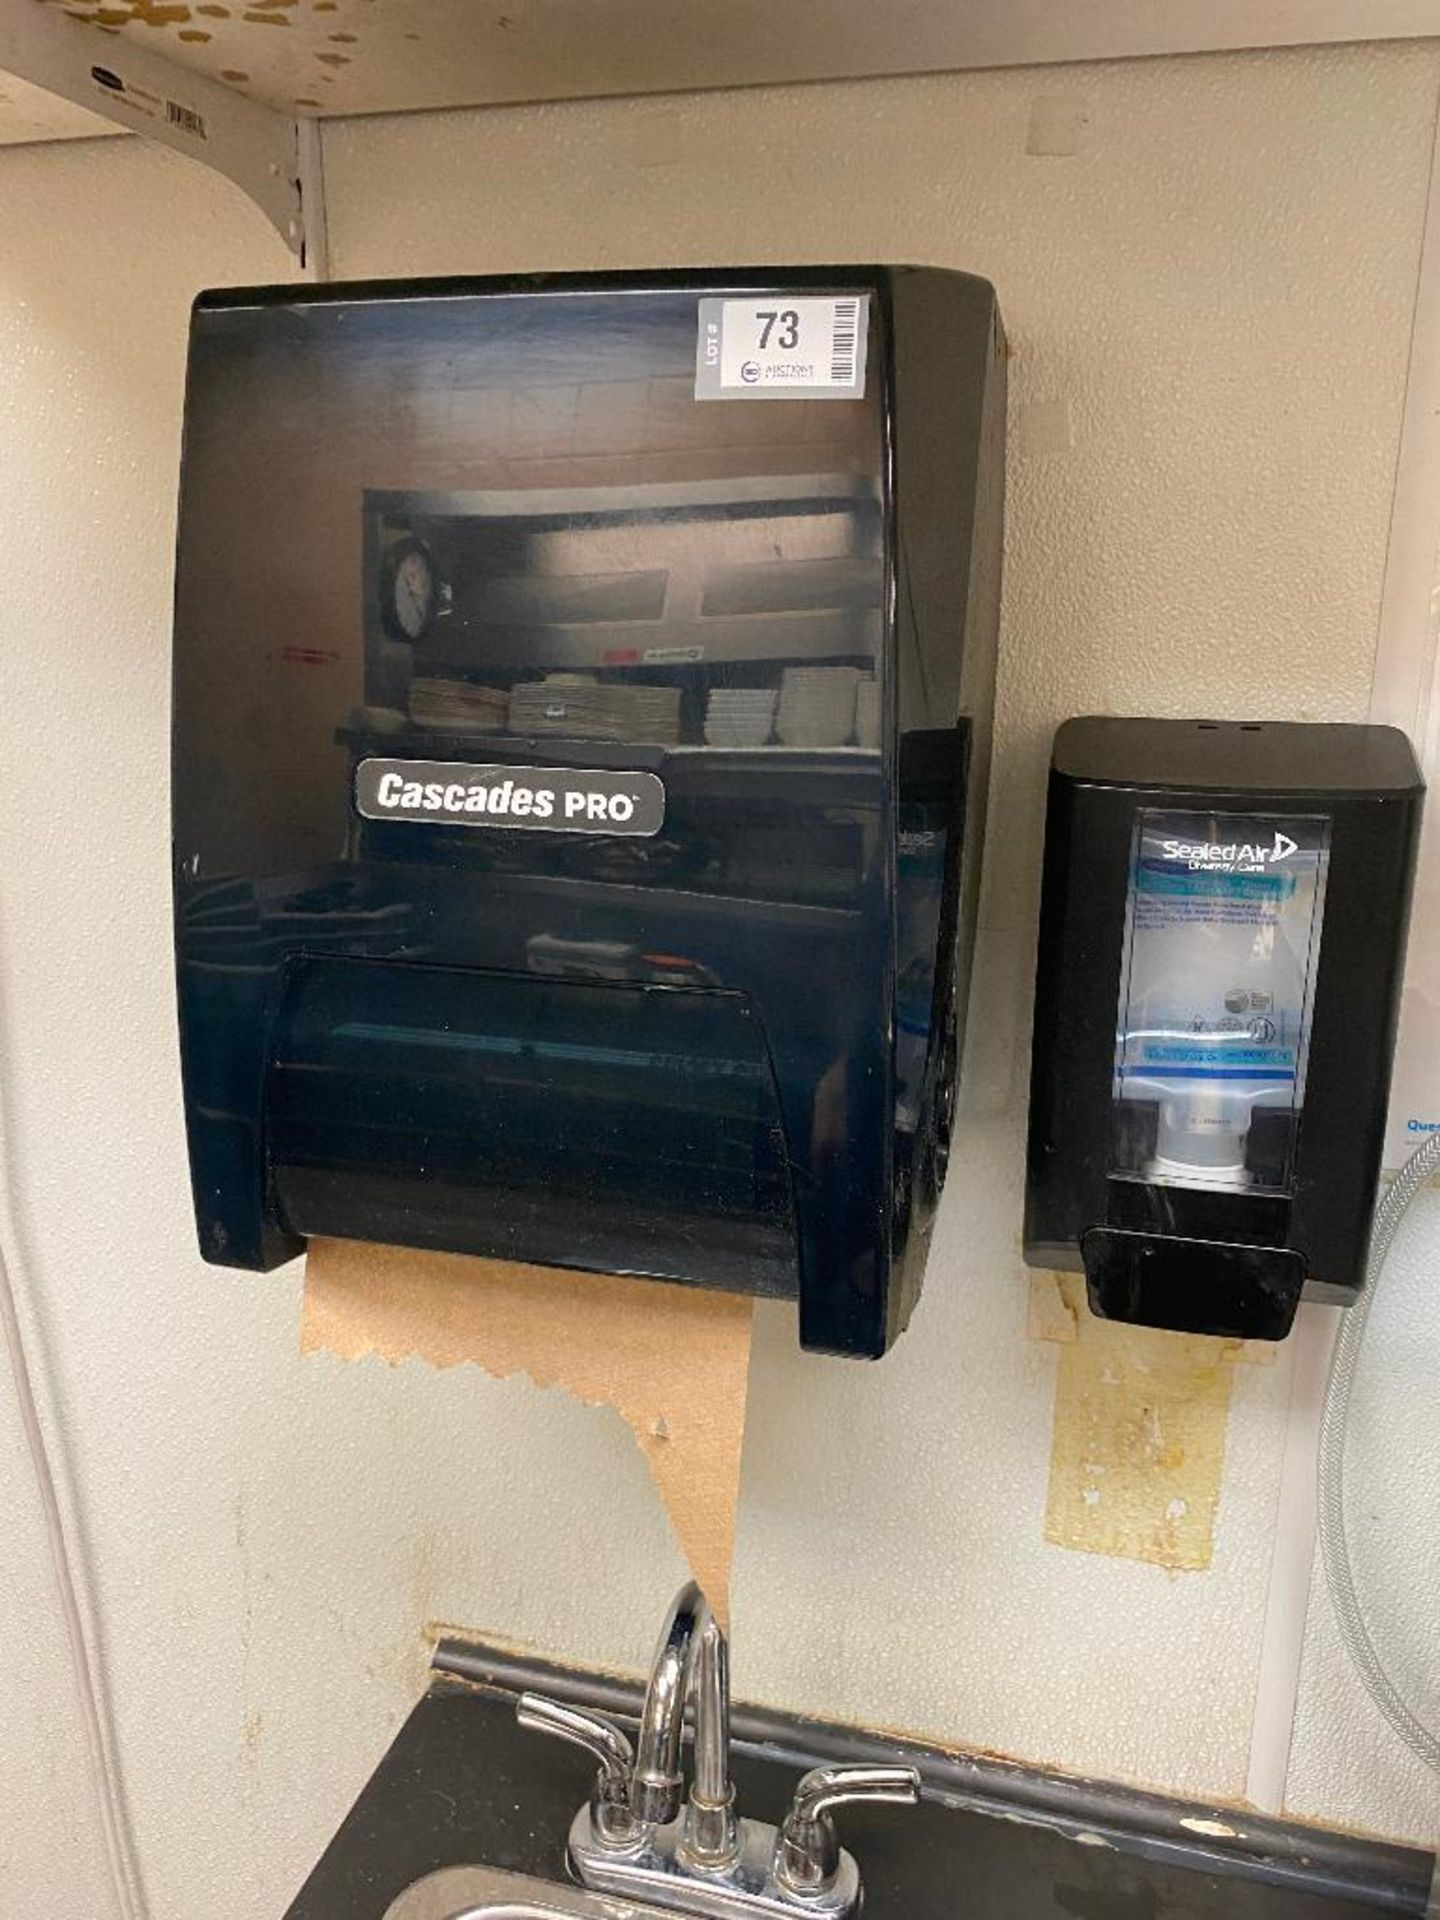 (3) CASCADES PRO PAPER TOWEL DISPENSERS - NOTE: REQUIRES REMOVAL FROM WALL, PLEASE INSPECT